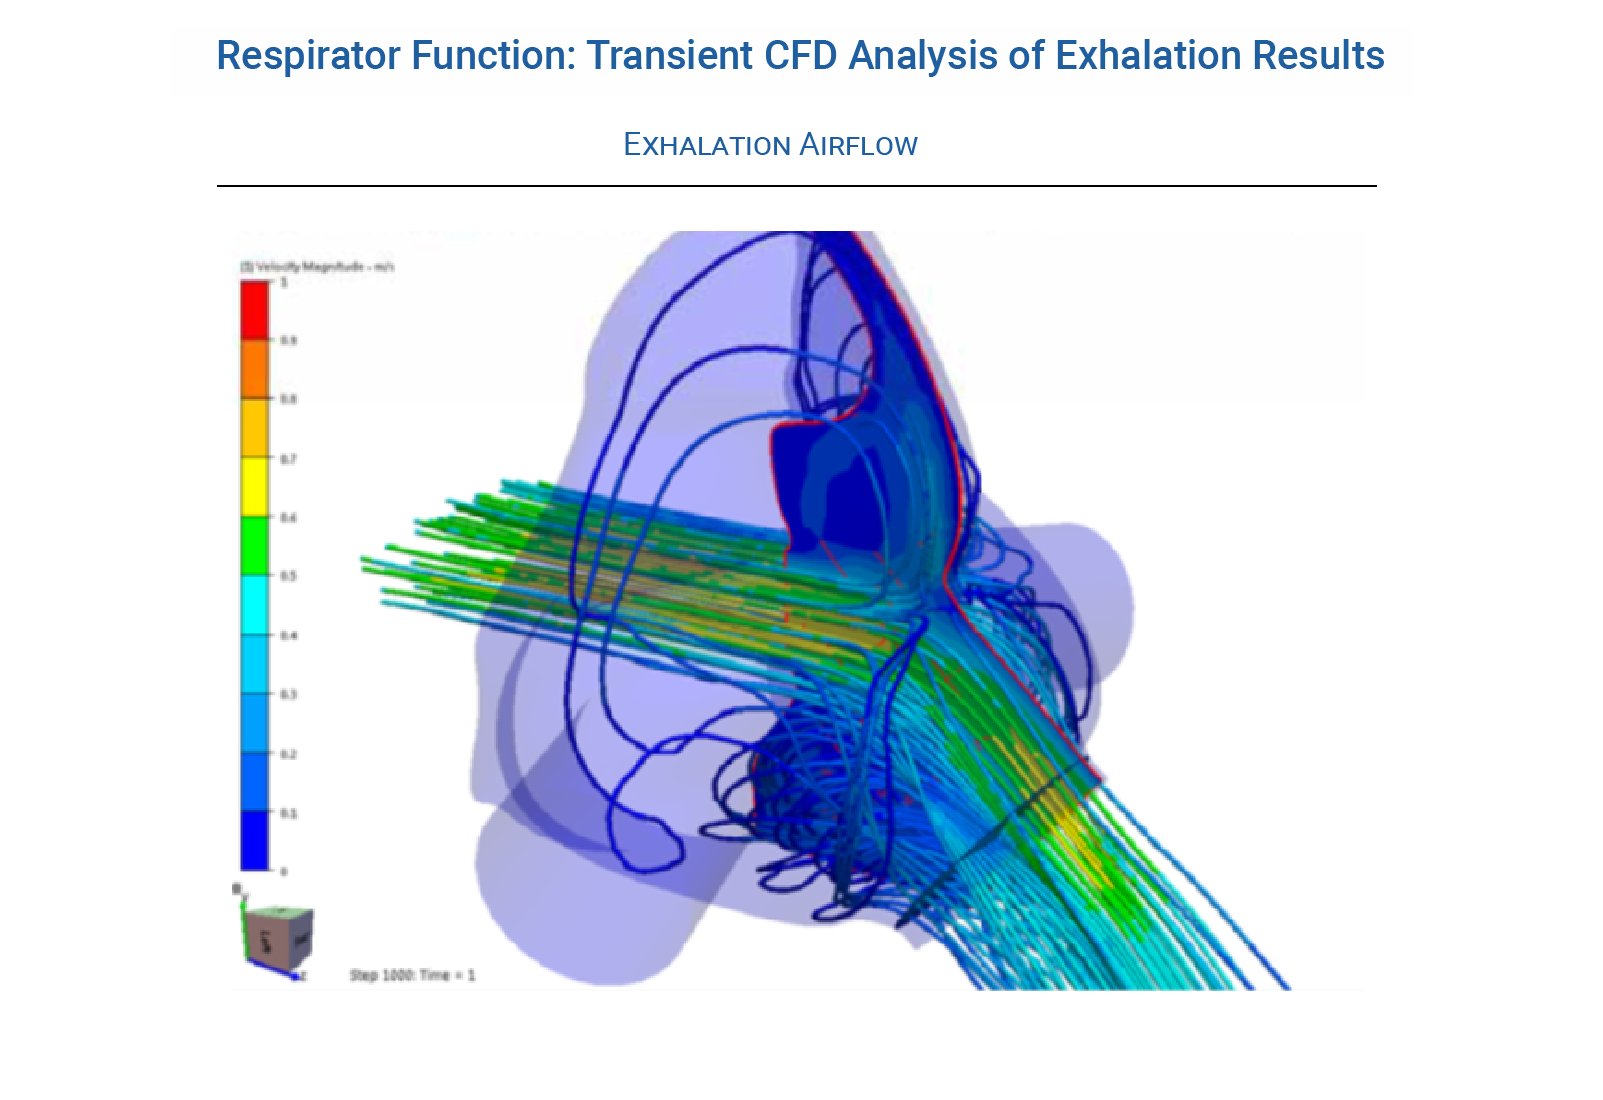 Respirator Mask Function During Breathing Cycle - Transient CFD Analysis of Exhalation Results - Predictive Engineering CFD Consulting Services